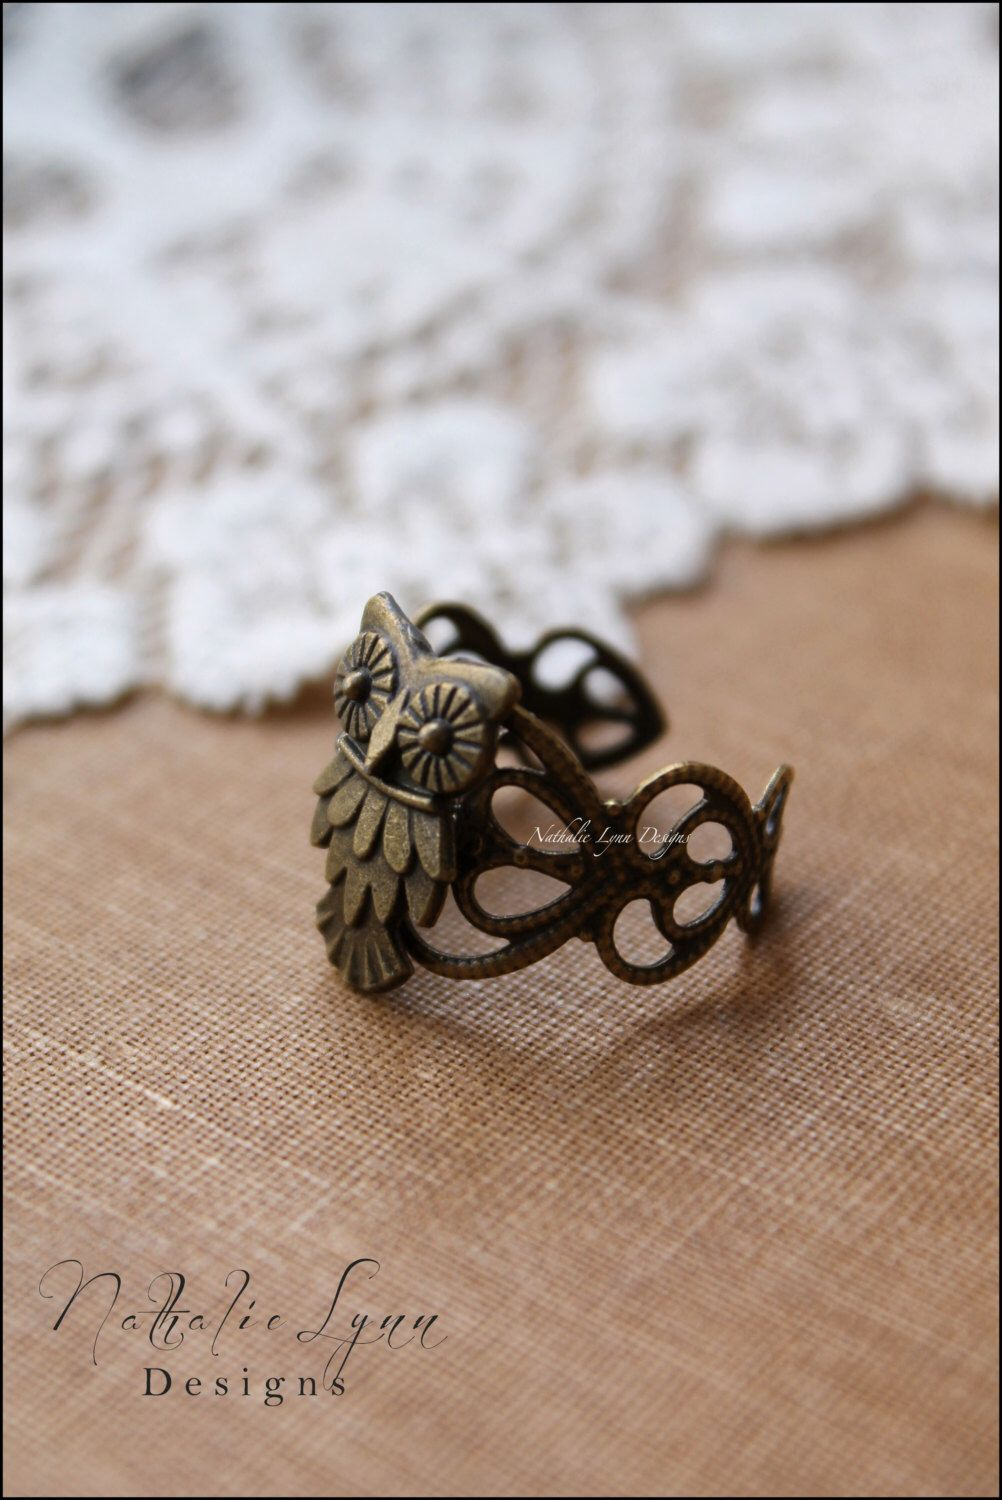 Owl Ring, Adjustable Ring by nathalielynndesigns on Etsy https://www.etsy.com/listing/182757512/owl-ring-adjustable-ring